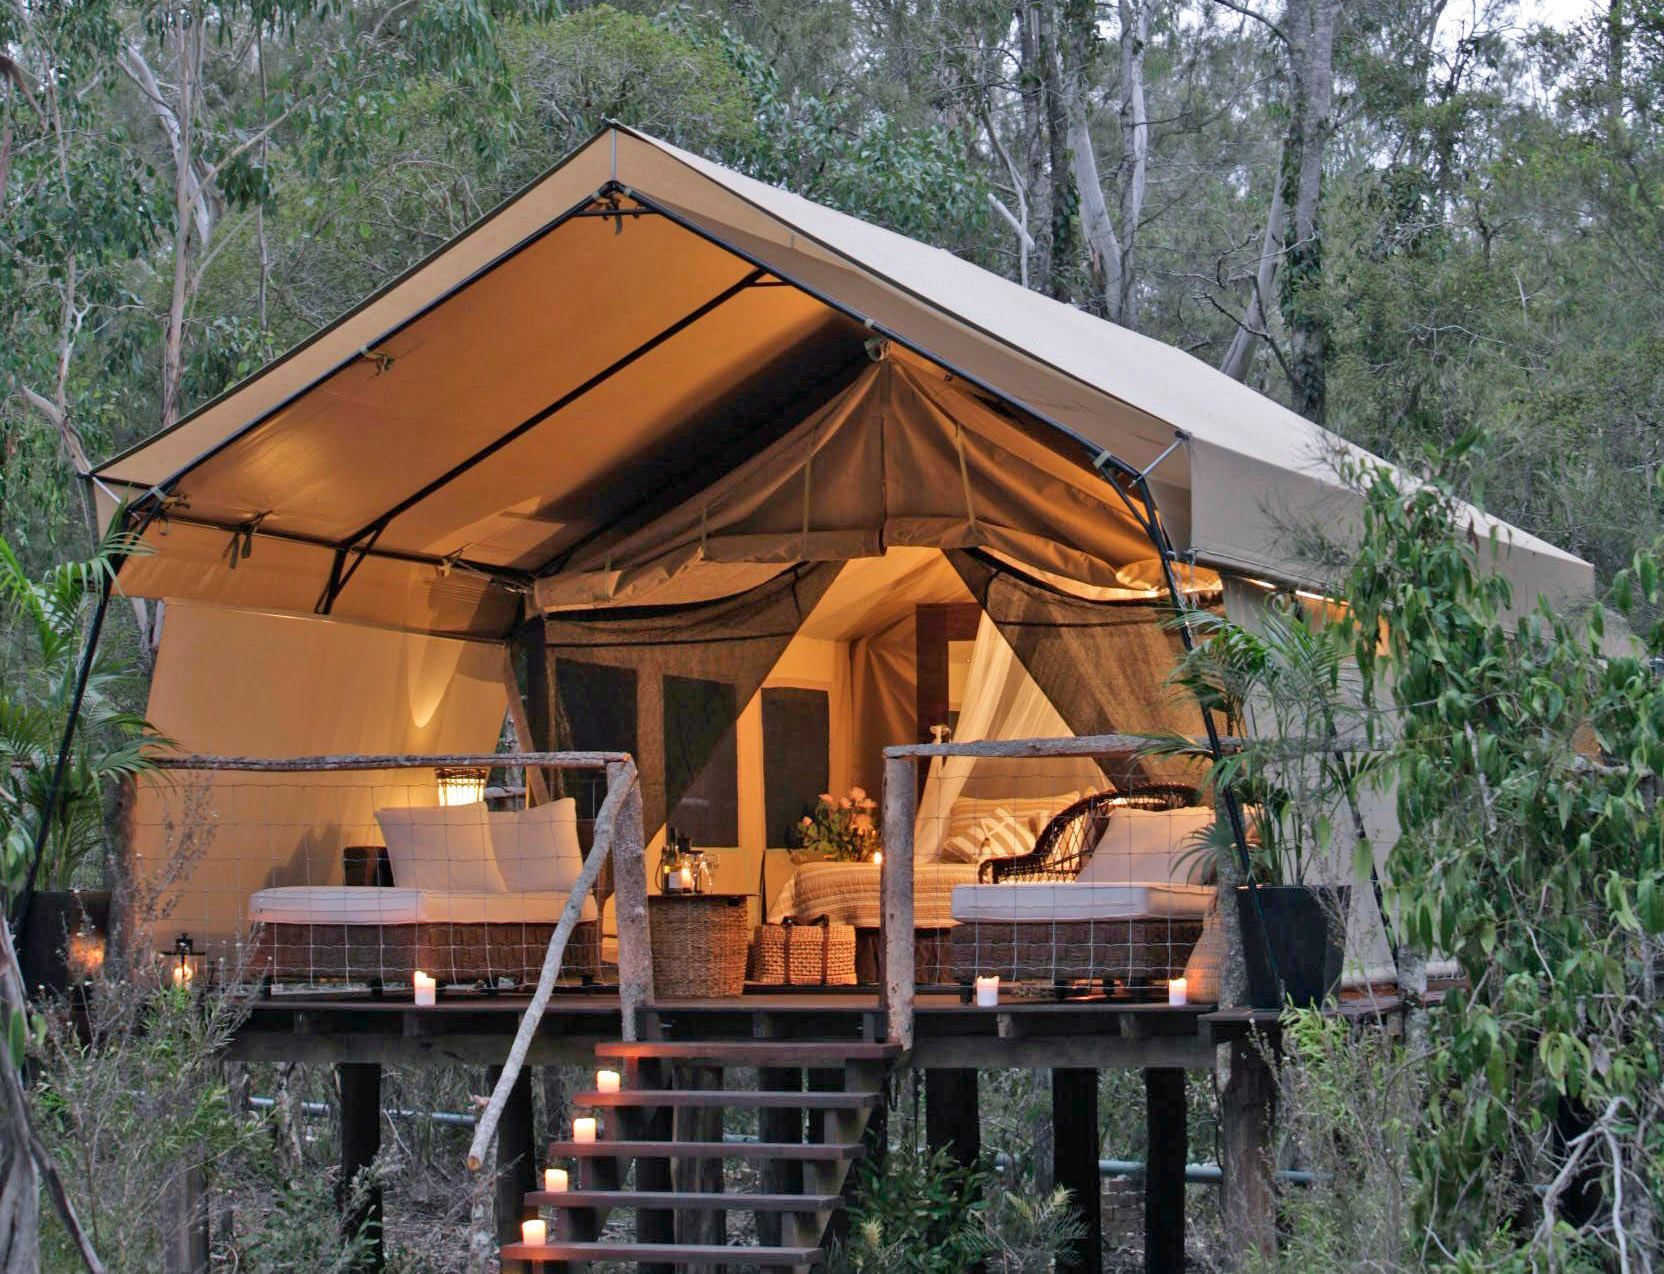 glamping u0027 in a tree house tent there really isn u0027t much doing but